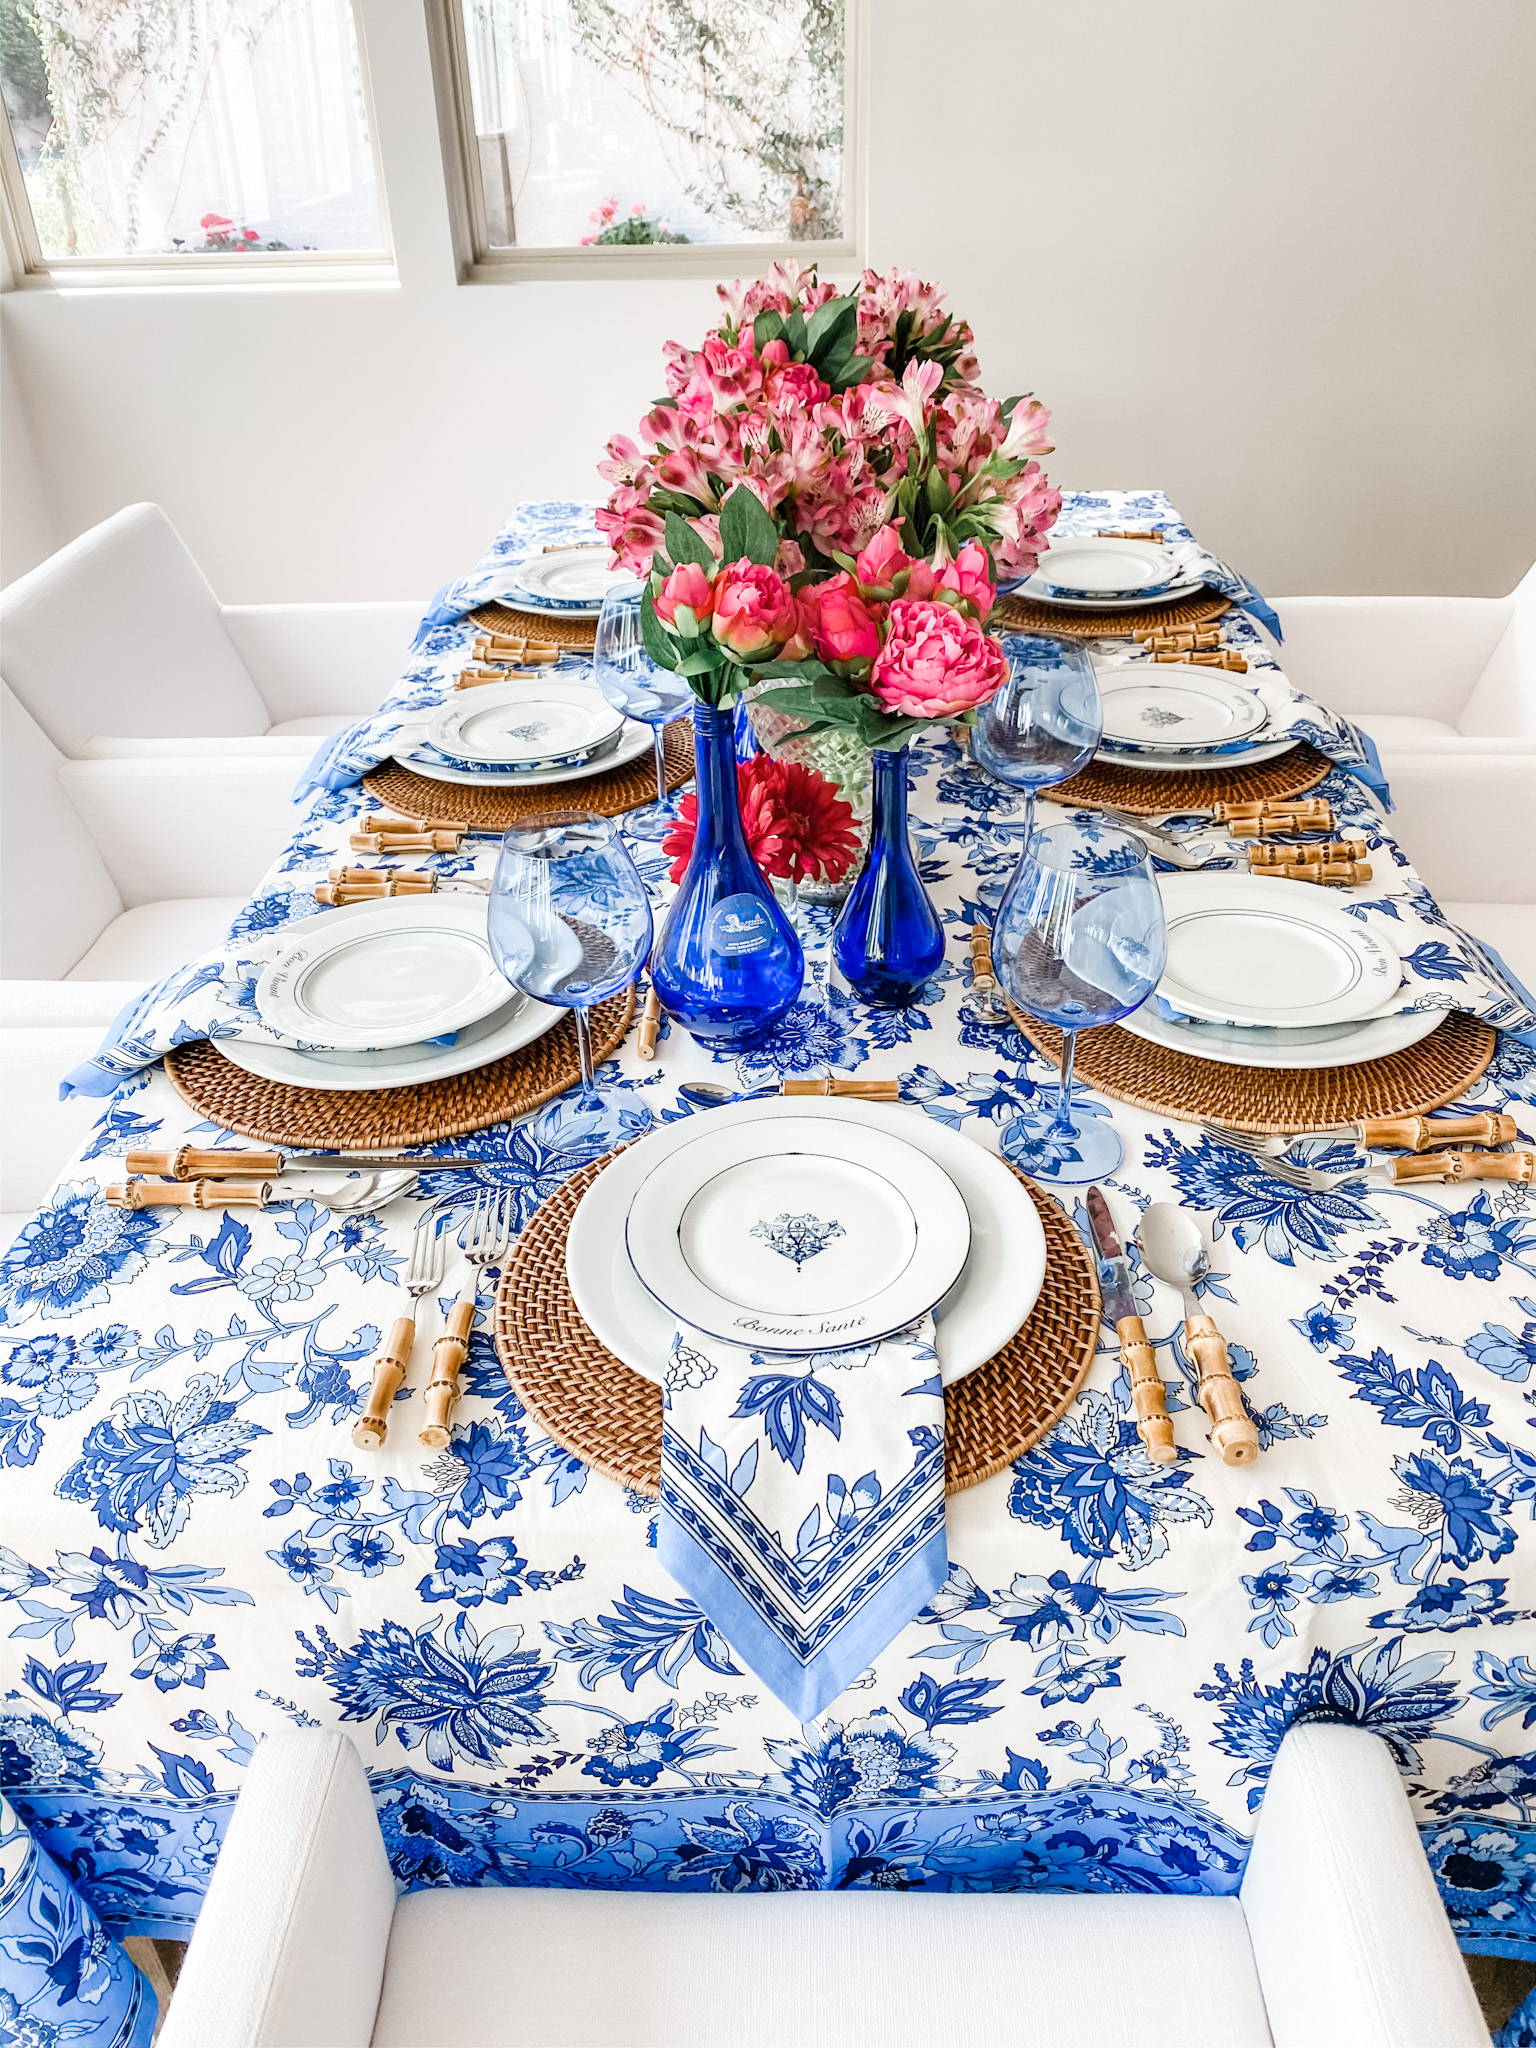 Cobalt Blue and Pink Floral Table